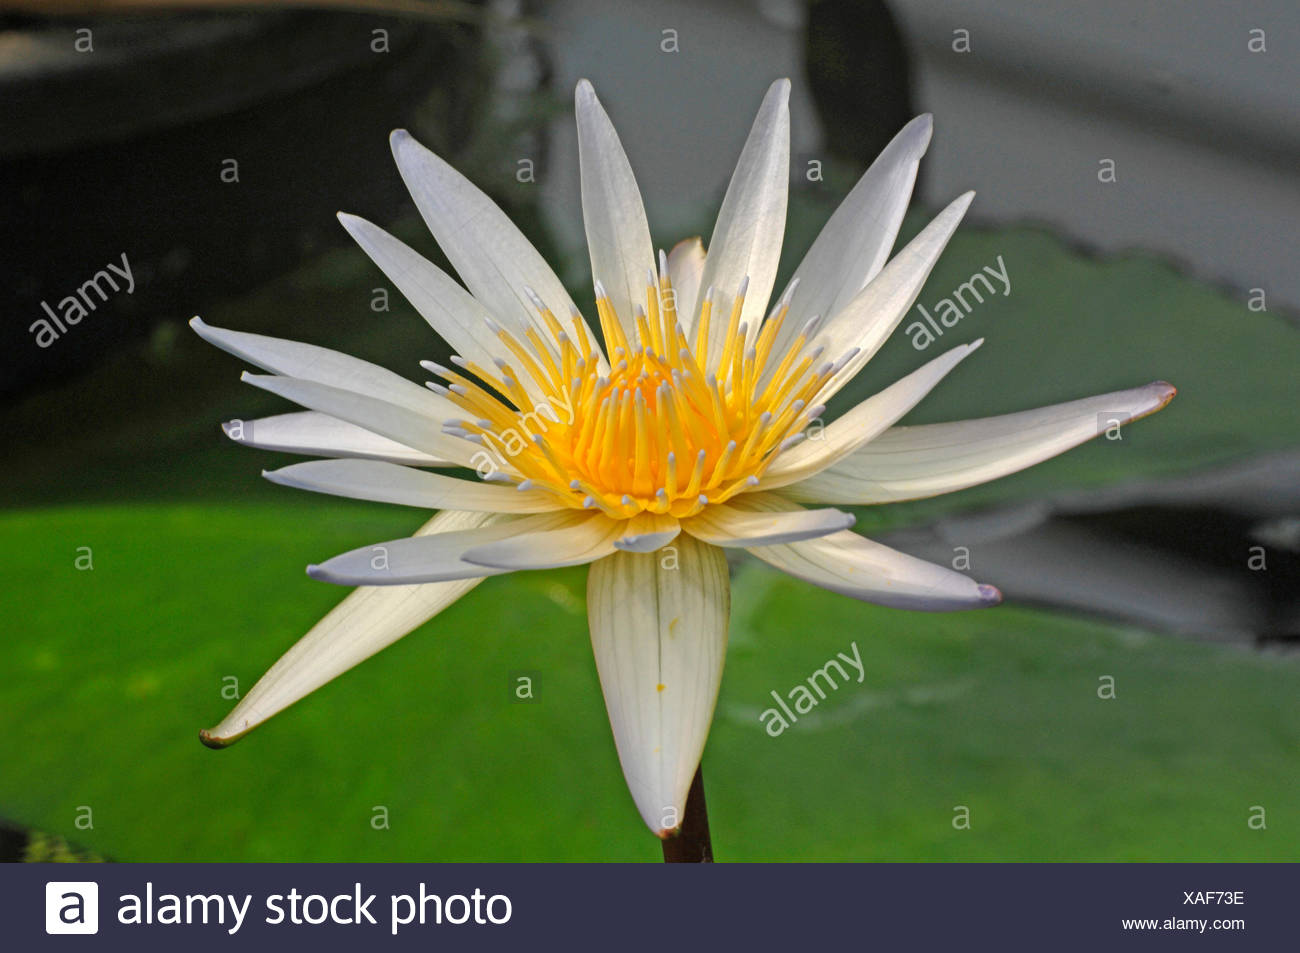 Ninfee pond lily (Nymphaea spec.), fiore, Germania Immagini Stock